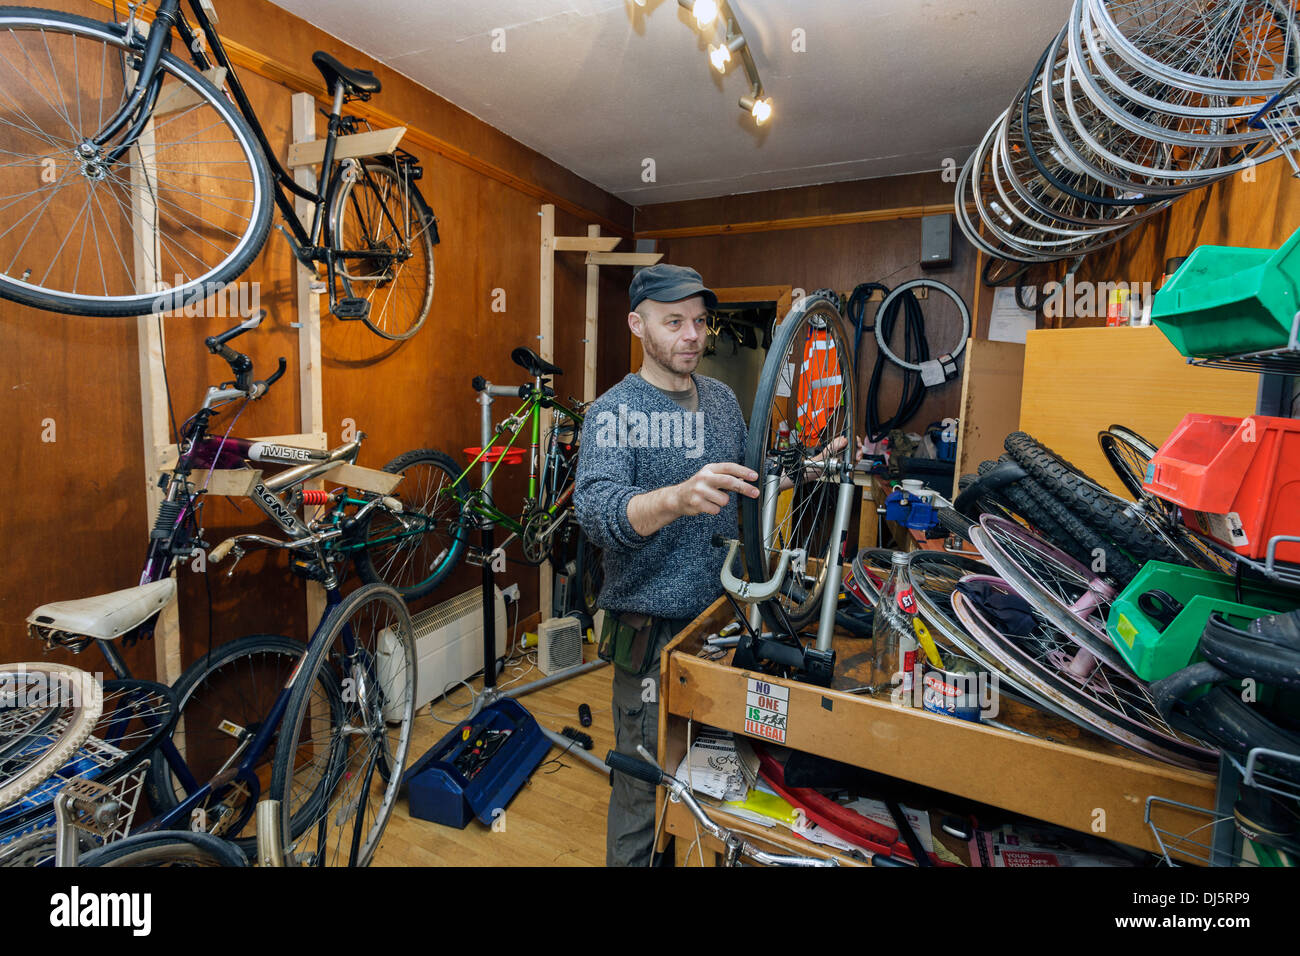 Man repairing bicycles at a workshop in Govan, Glasgow, Scotland, UK - Stock Image